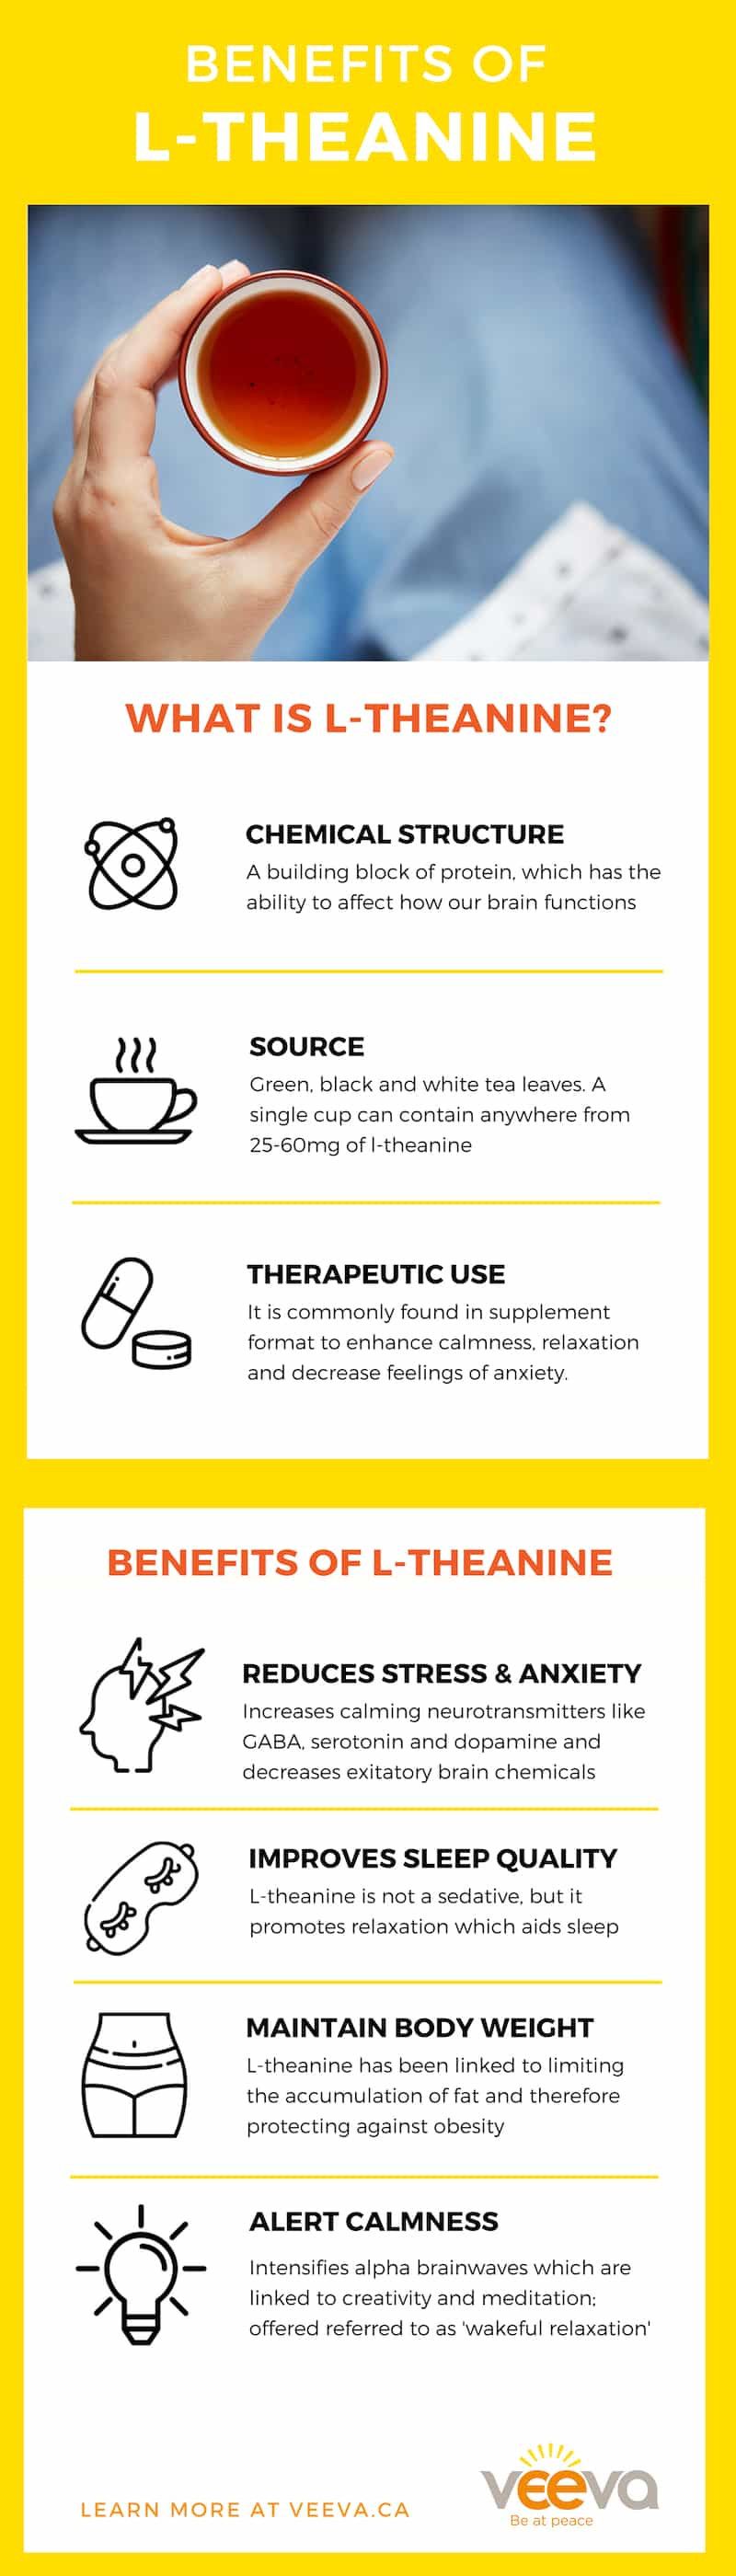 L-theanine benefits